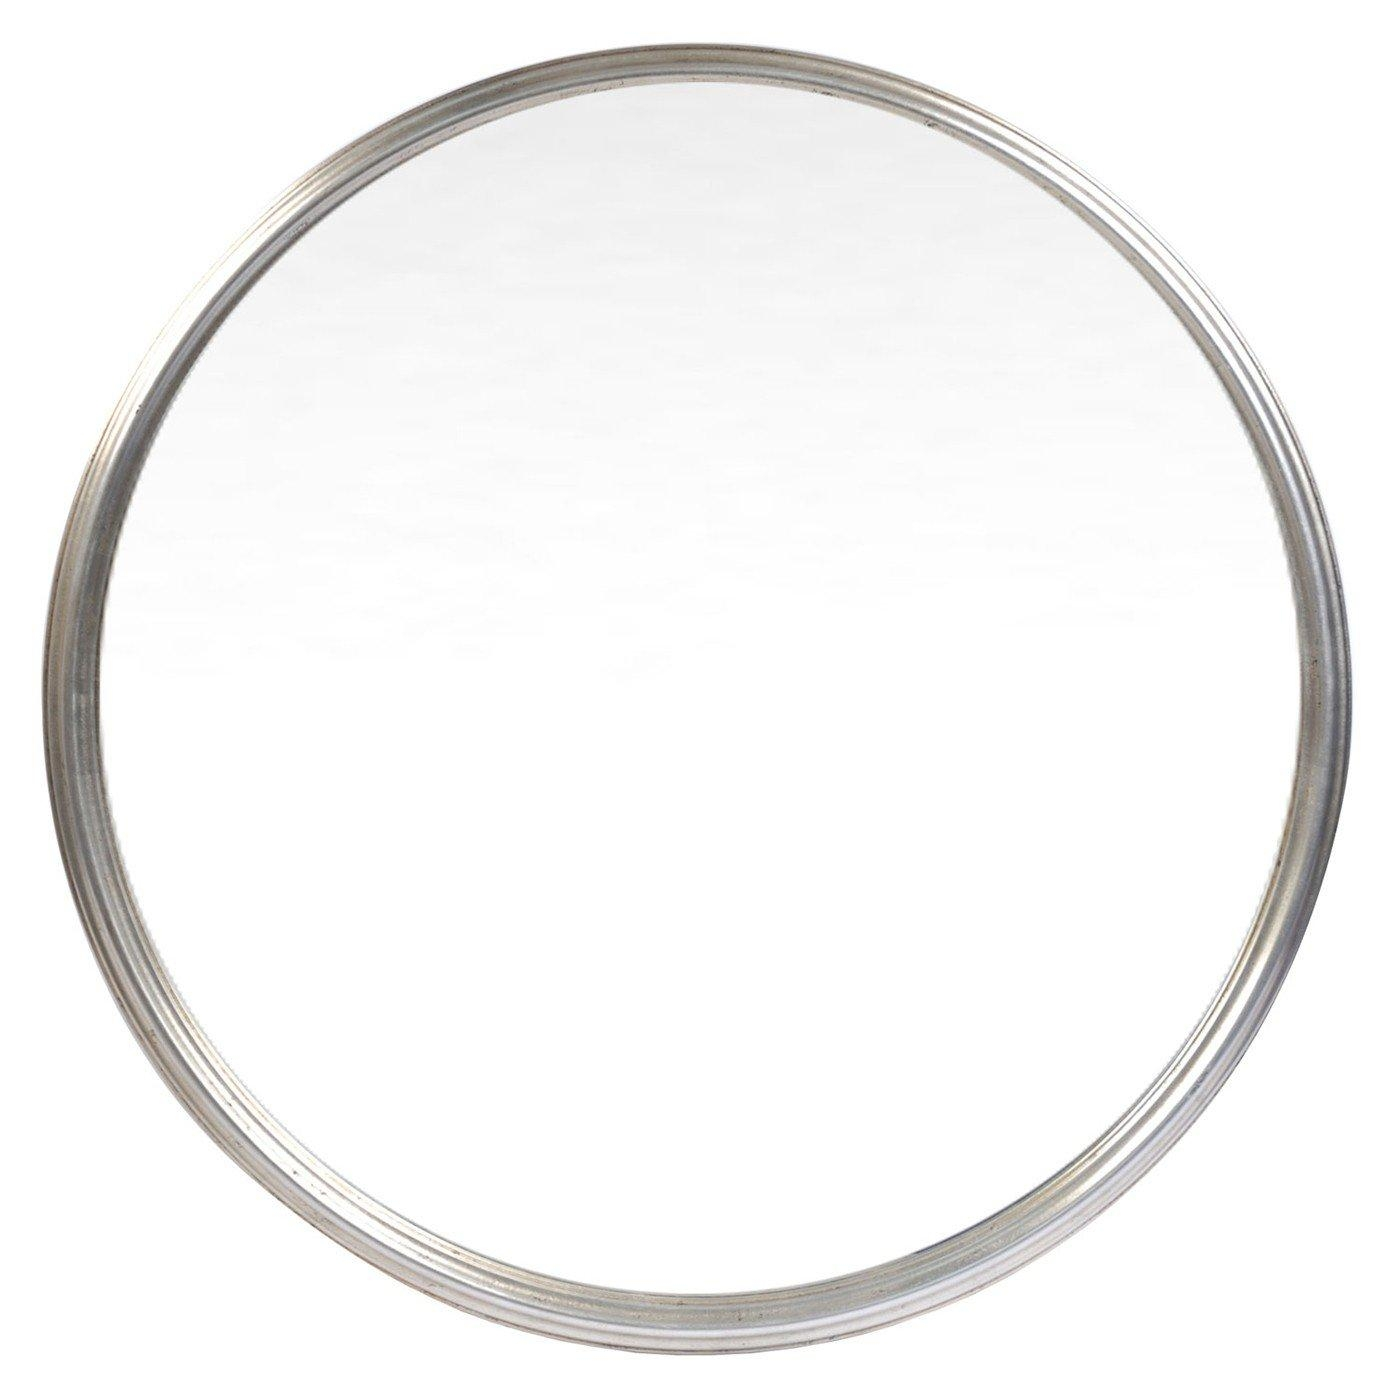 Round Mirrors | Modern Round & Circle Mirrors | Heal's Inside Round Mirror For Sale (View 6 of 20)